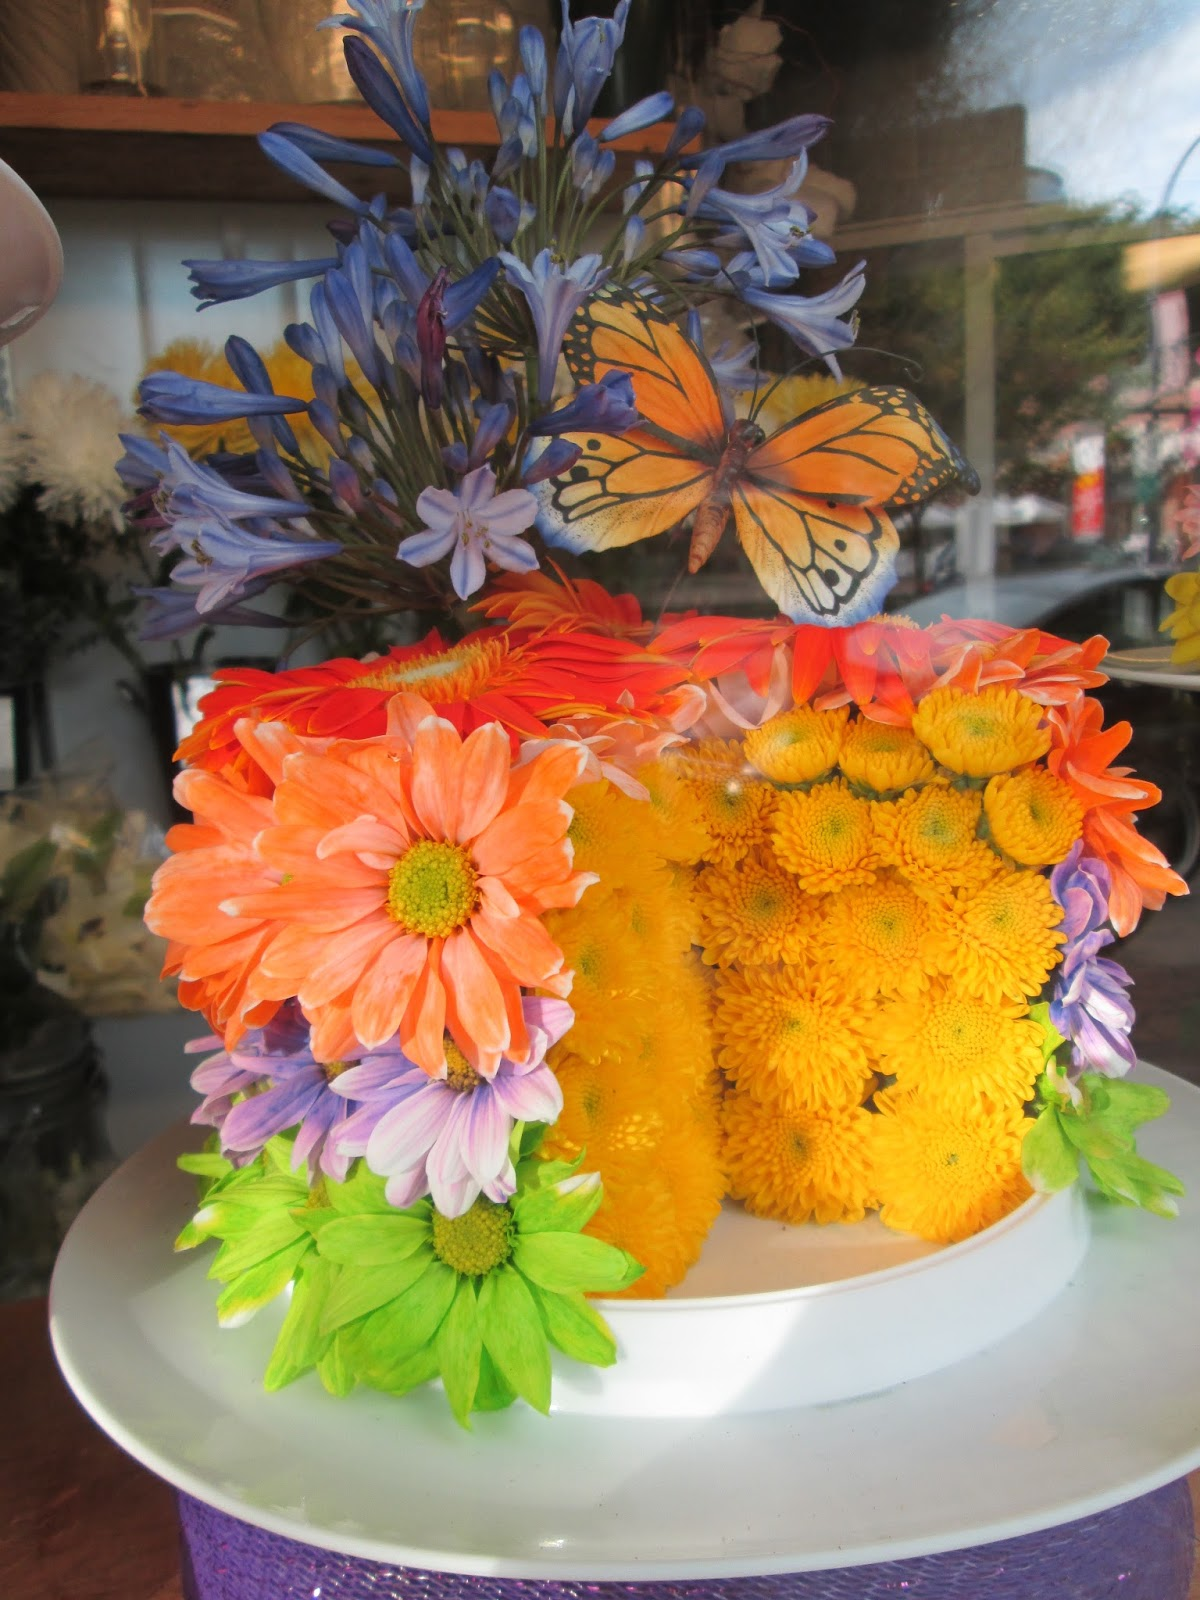 Tea with lavera flower bouquet cakes a cake made of flowers a cake bouquets izmirmasajfo